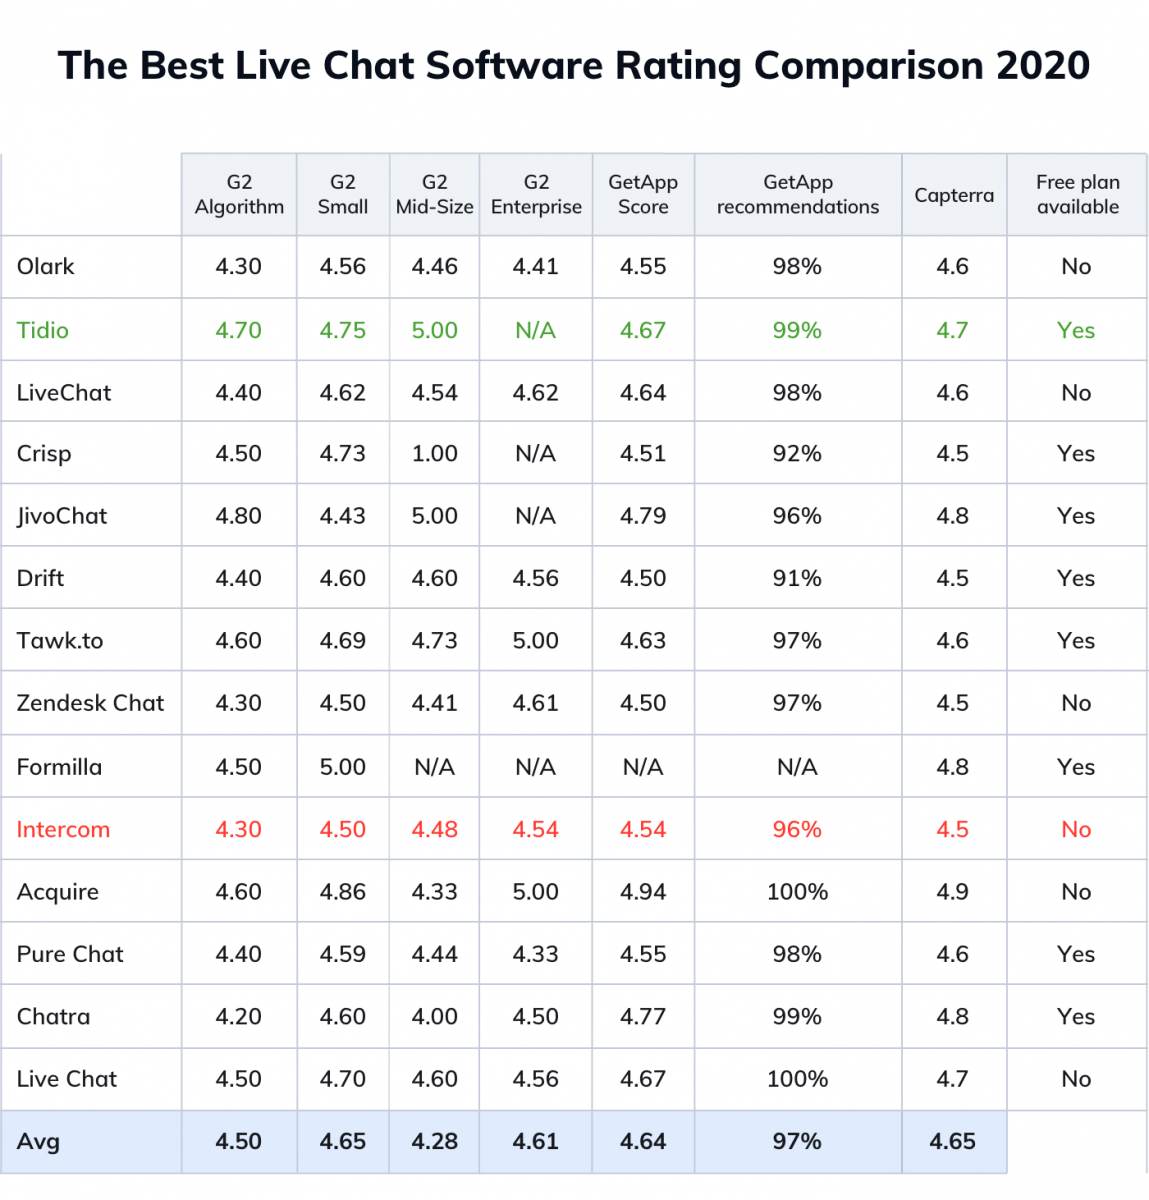 The ranking of the most popular live chat software available in 2020 and ratings